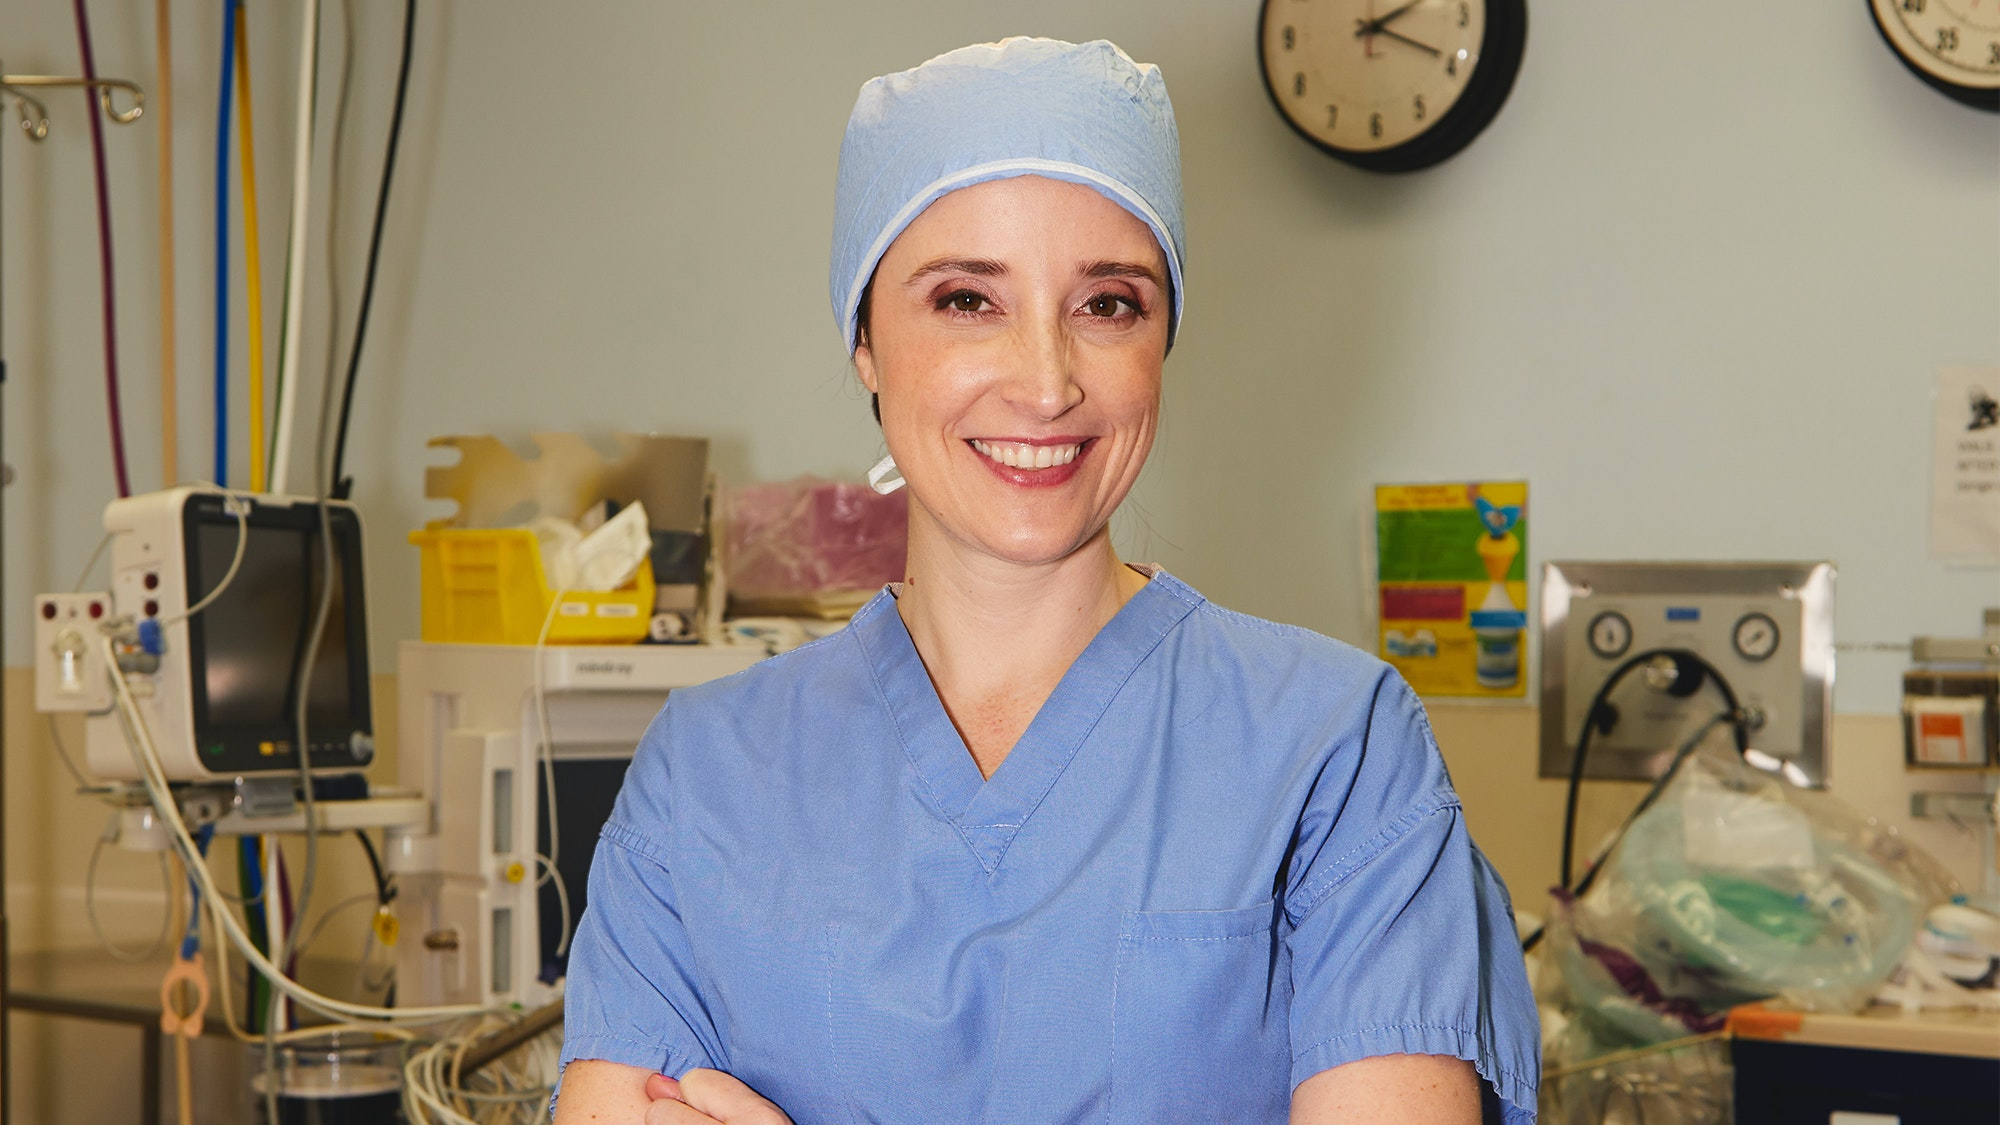 A Day In the Life: New Jersey-Based Plastic Surgeon Dr. Alexis Parcells